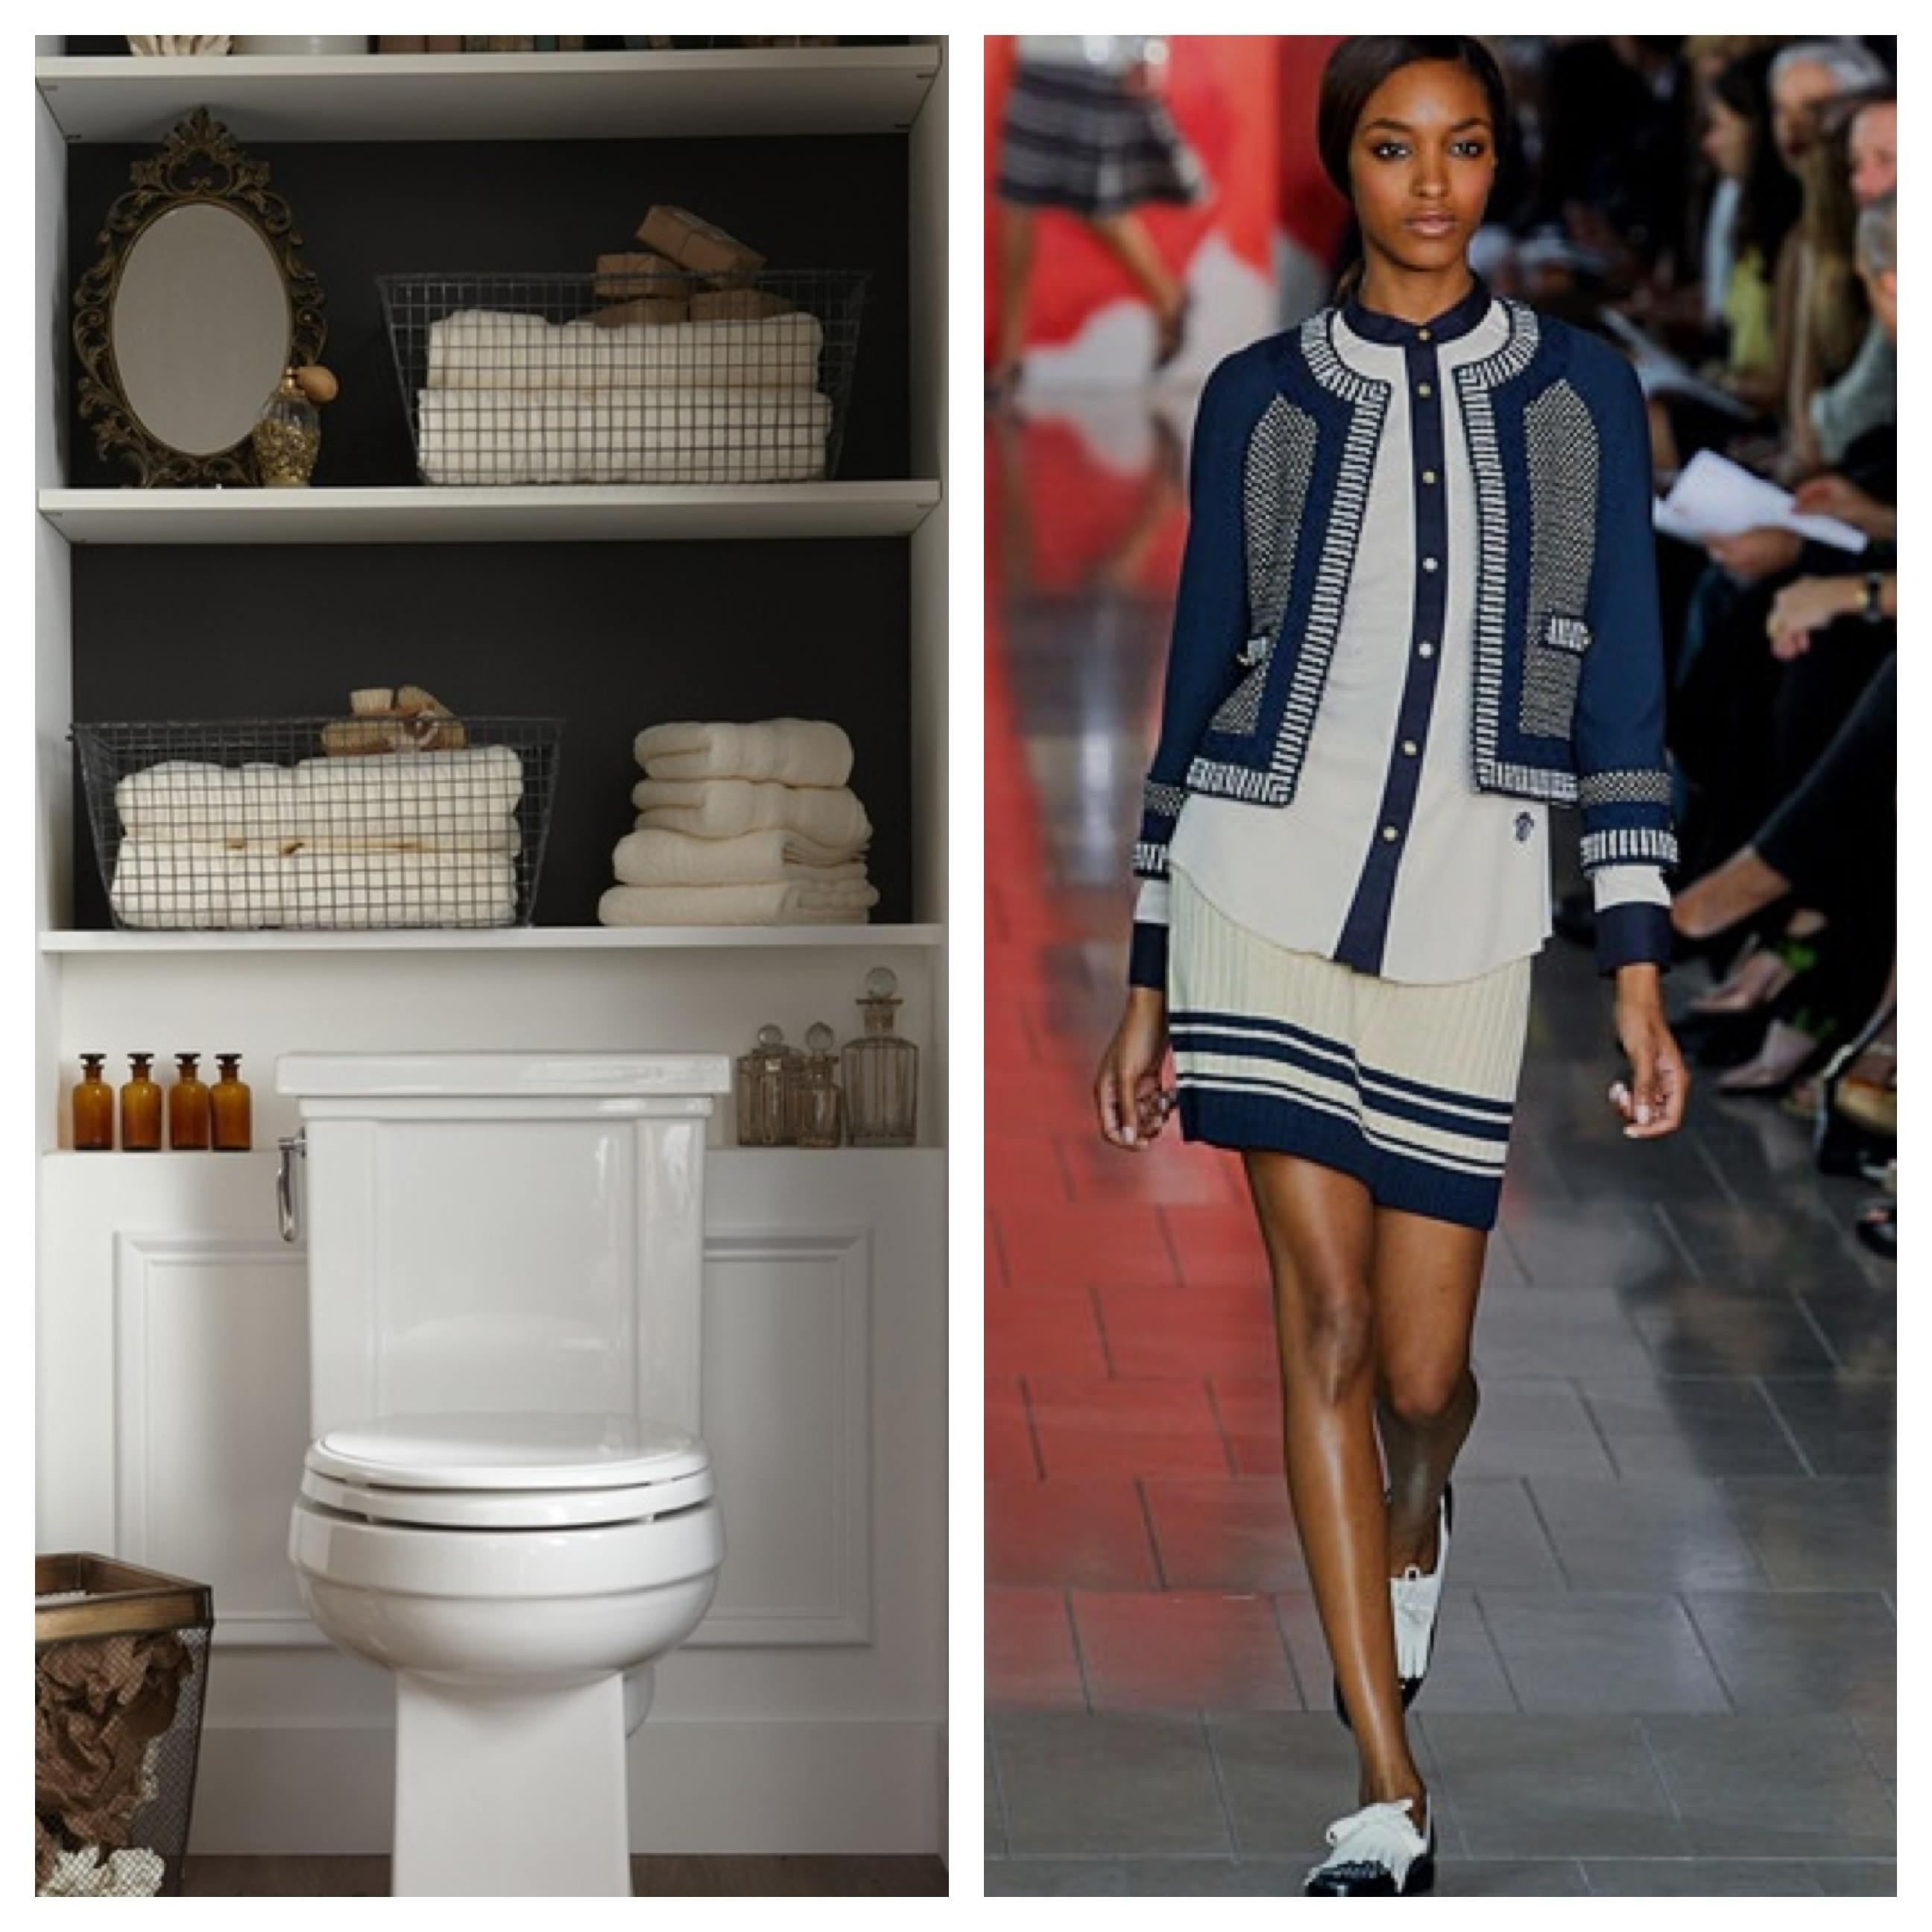 Fashion Week, New York Fashion Week, Model, Runway, Catwalk, skinny girl, pretty girl, bathroom, navy bathroom, white toilet, folded towels